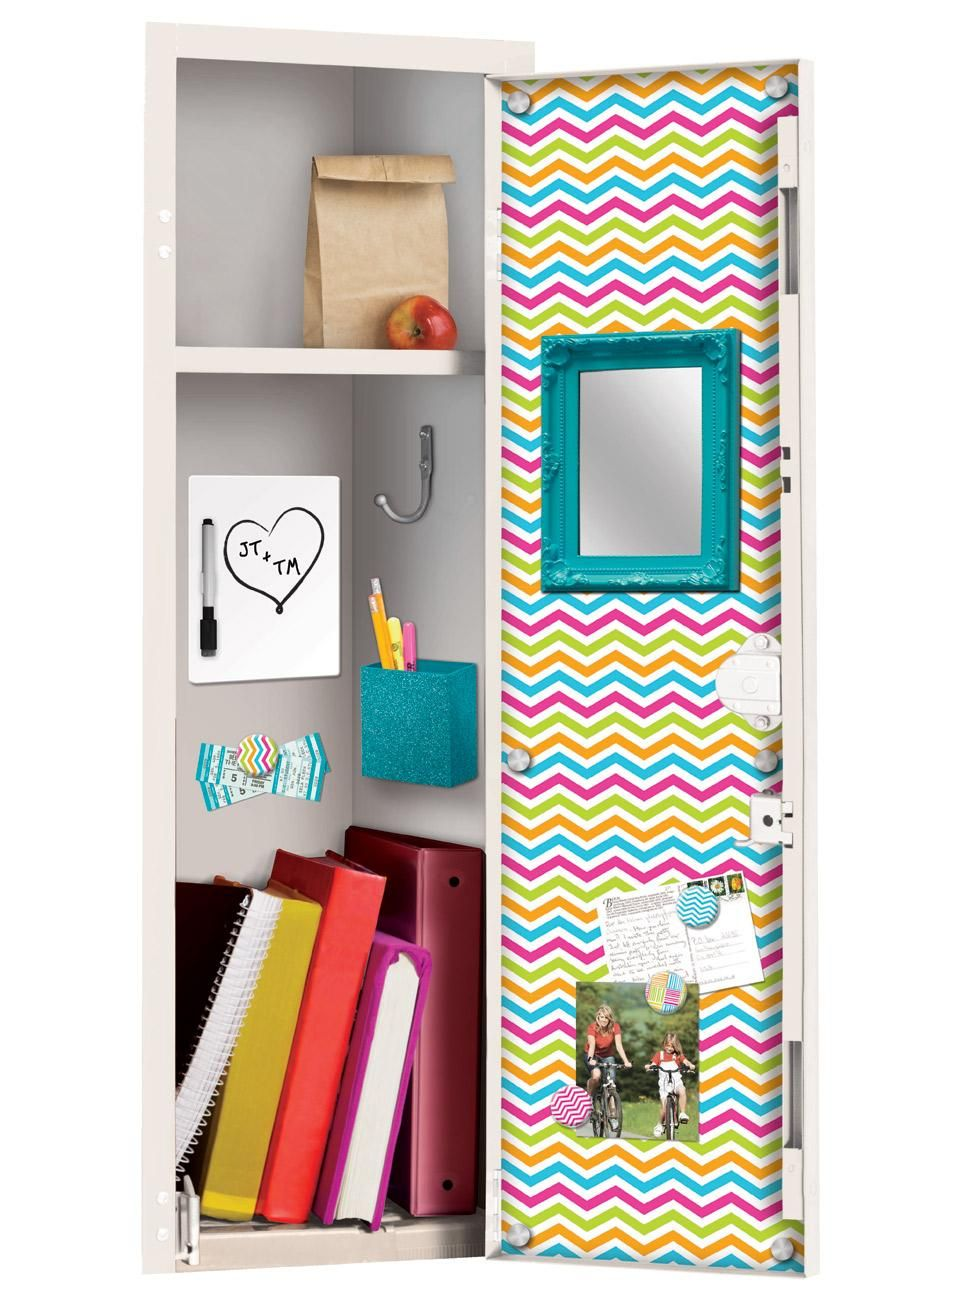 Locker Decoration Ideas locker accessories, locker shelves & locker decorations | pbteen